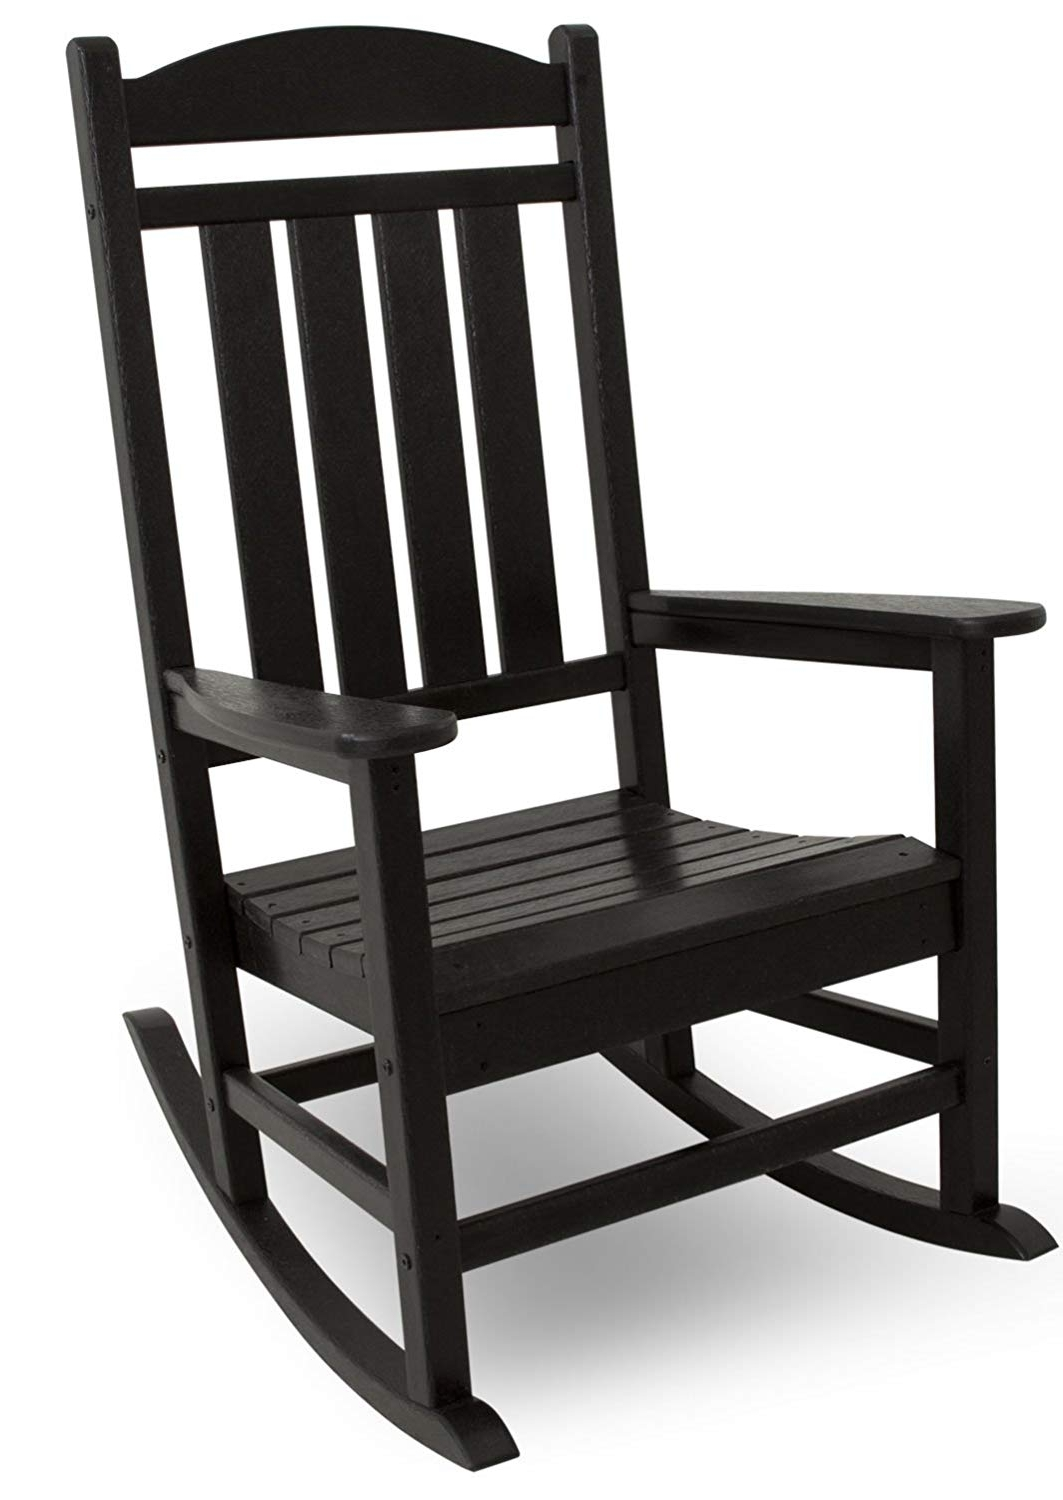 Patio Furniture Rocking Benches In Favorite Amazon : Polywood R100Bl Presidential Outdoor Rocking Chair (View 10 of 15)